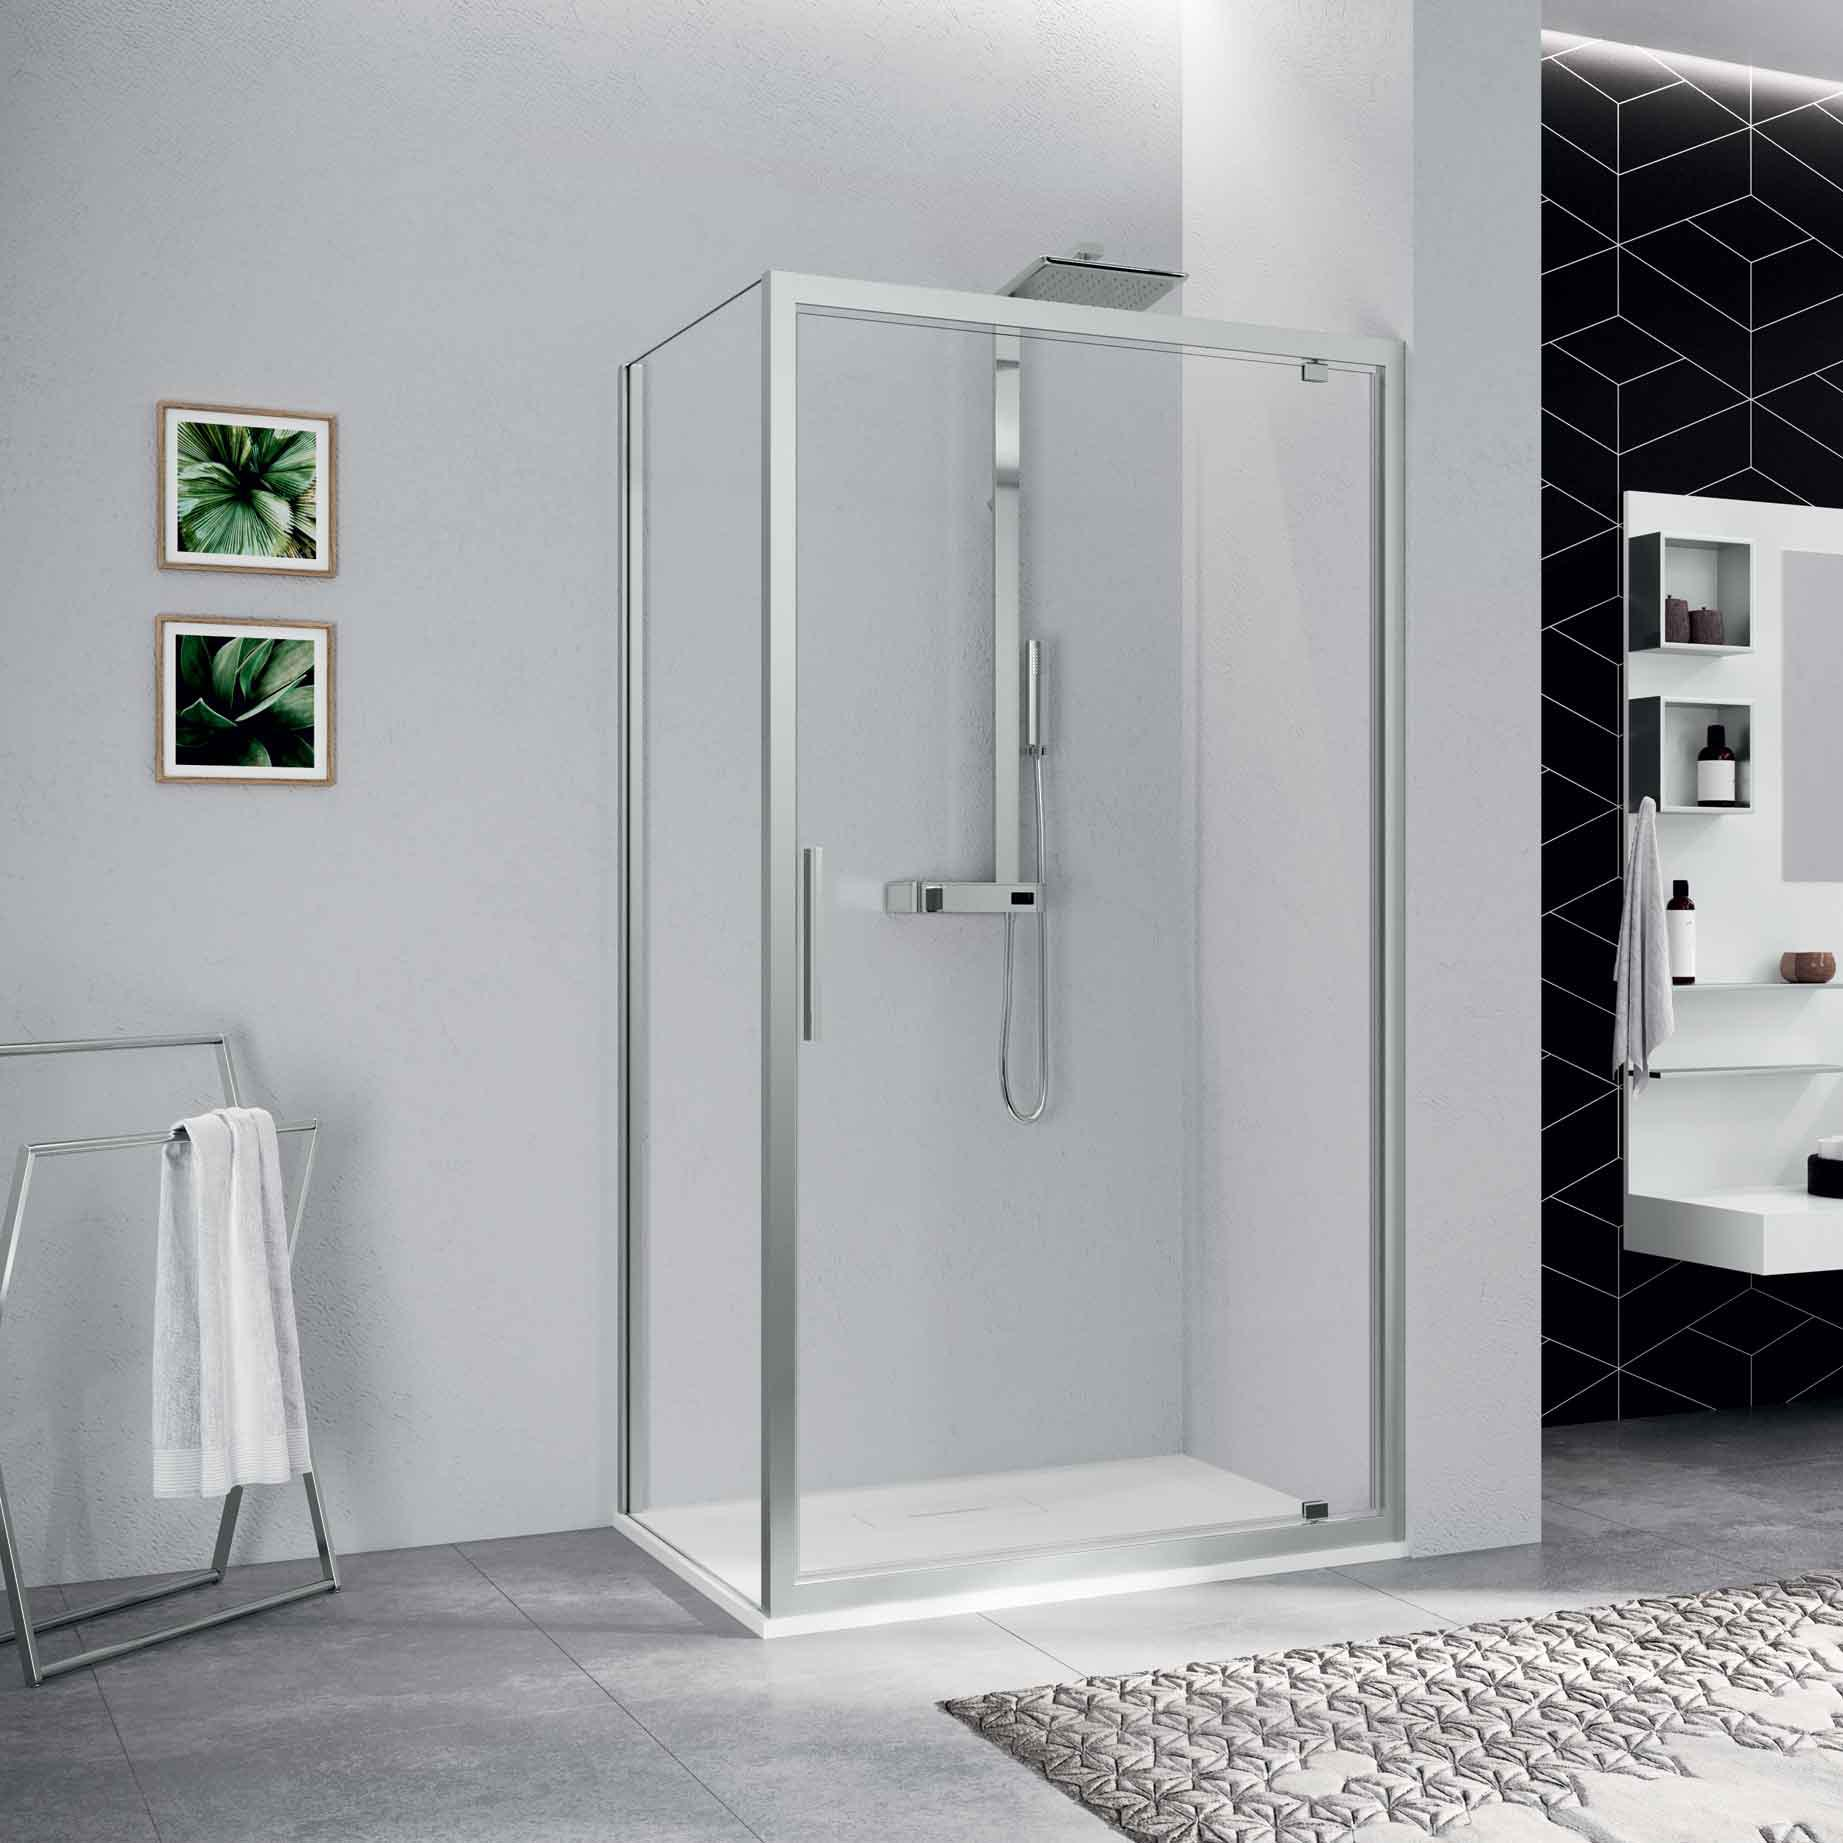 http://www.novellini.it/content/com/it/it/collections/shower-enclosures.img.png/1506509517417.jpg